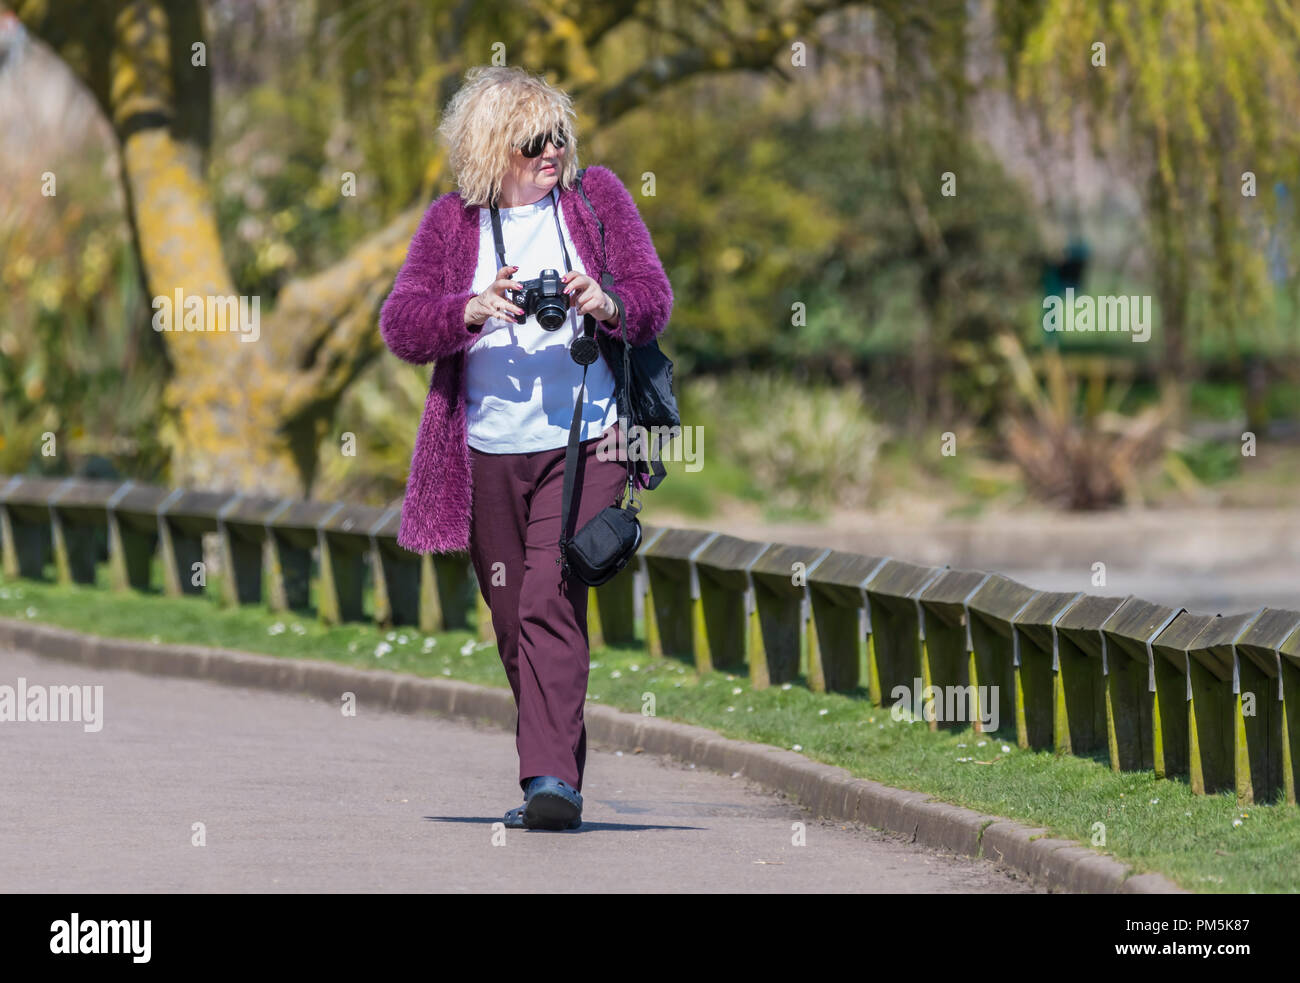 Middle aged woman walking through a park with a camera looking for things to photograph. - Stock Image